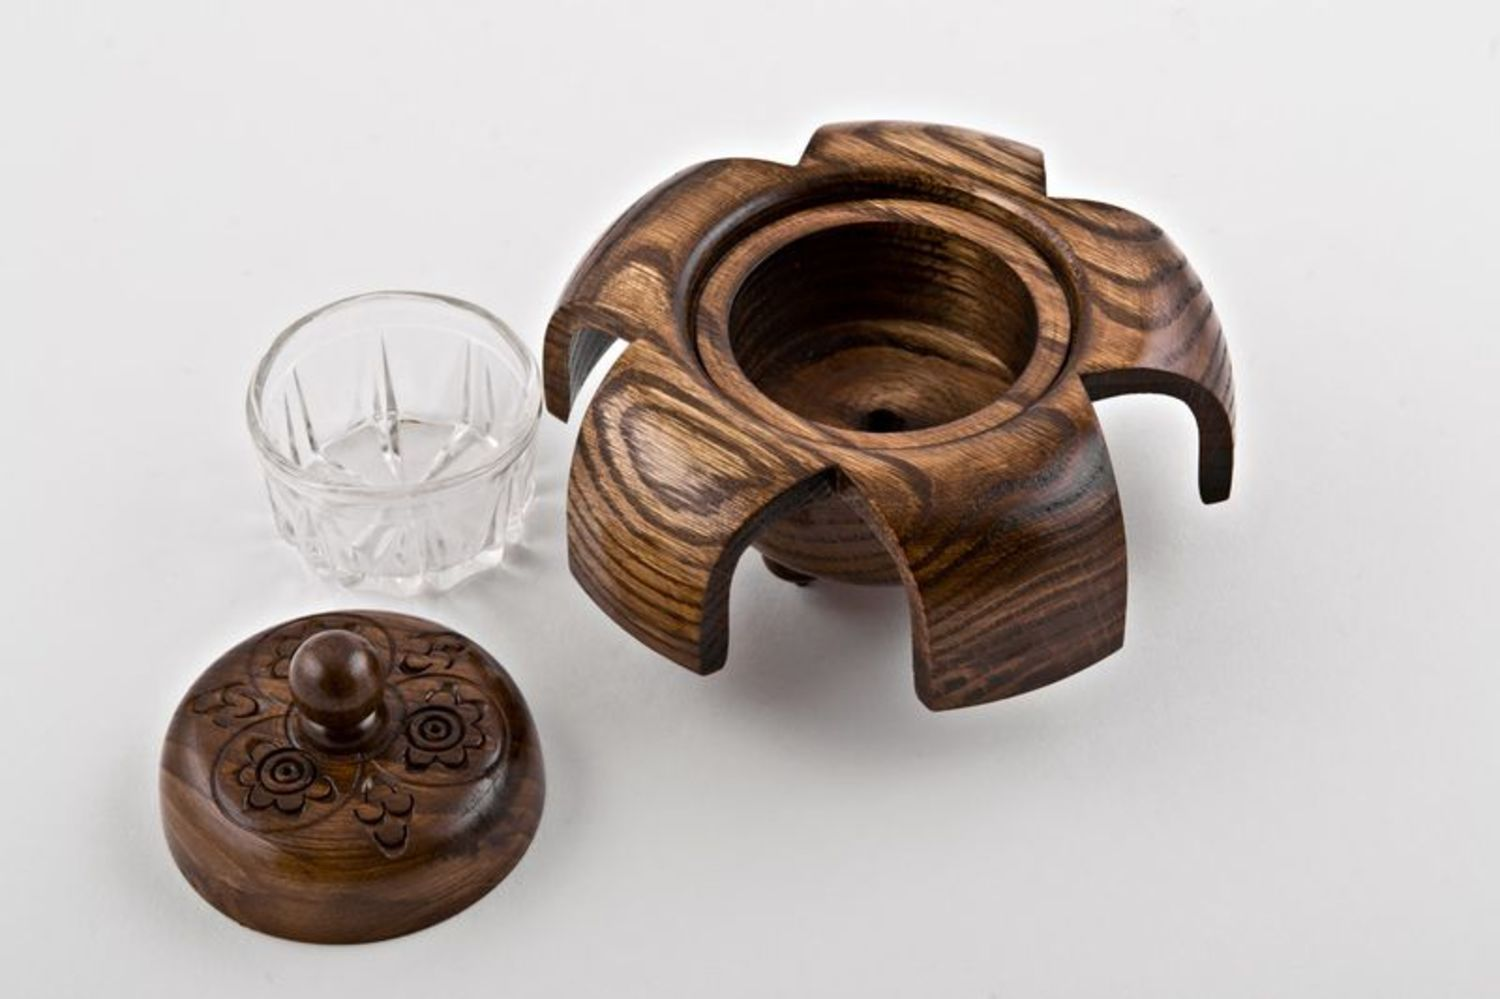 smoking accessories Wooden ash-tray - MADEheart.com